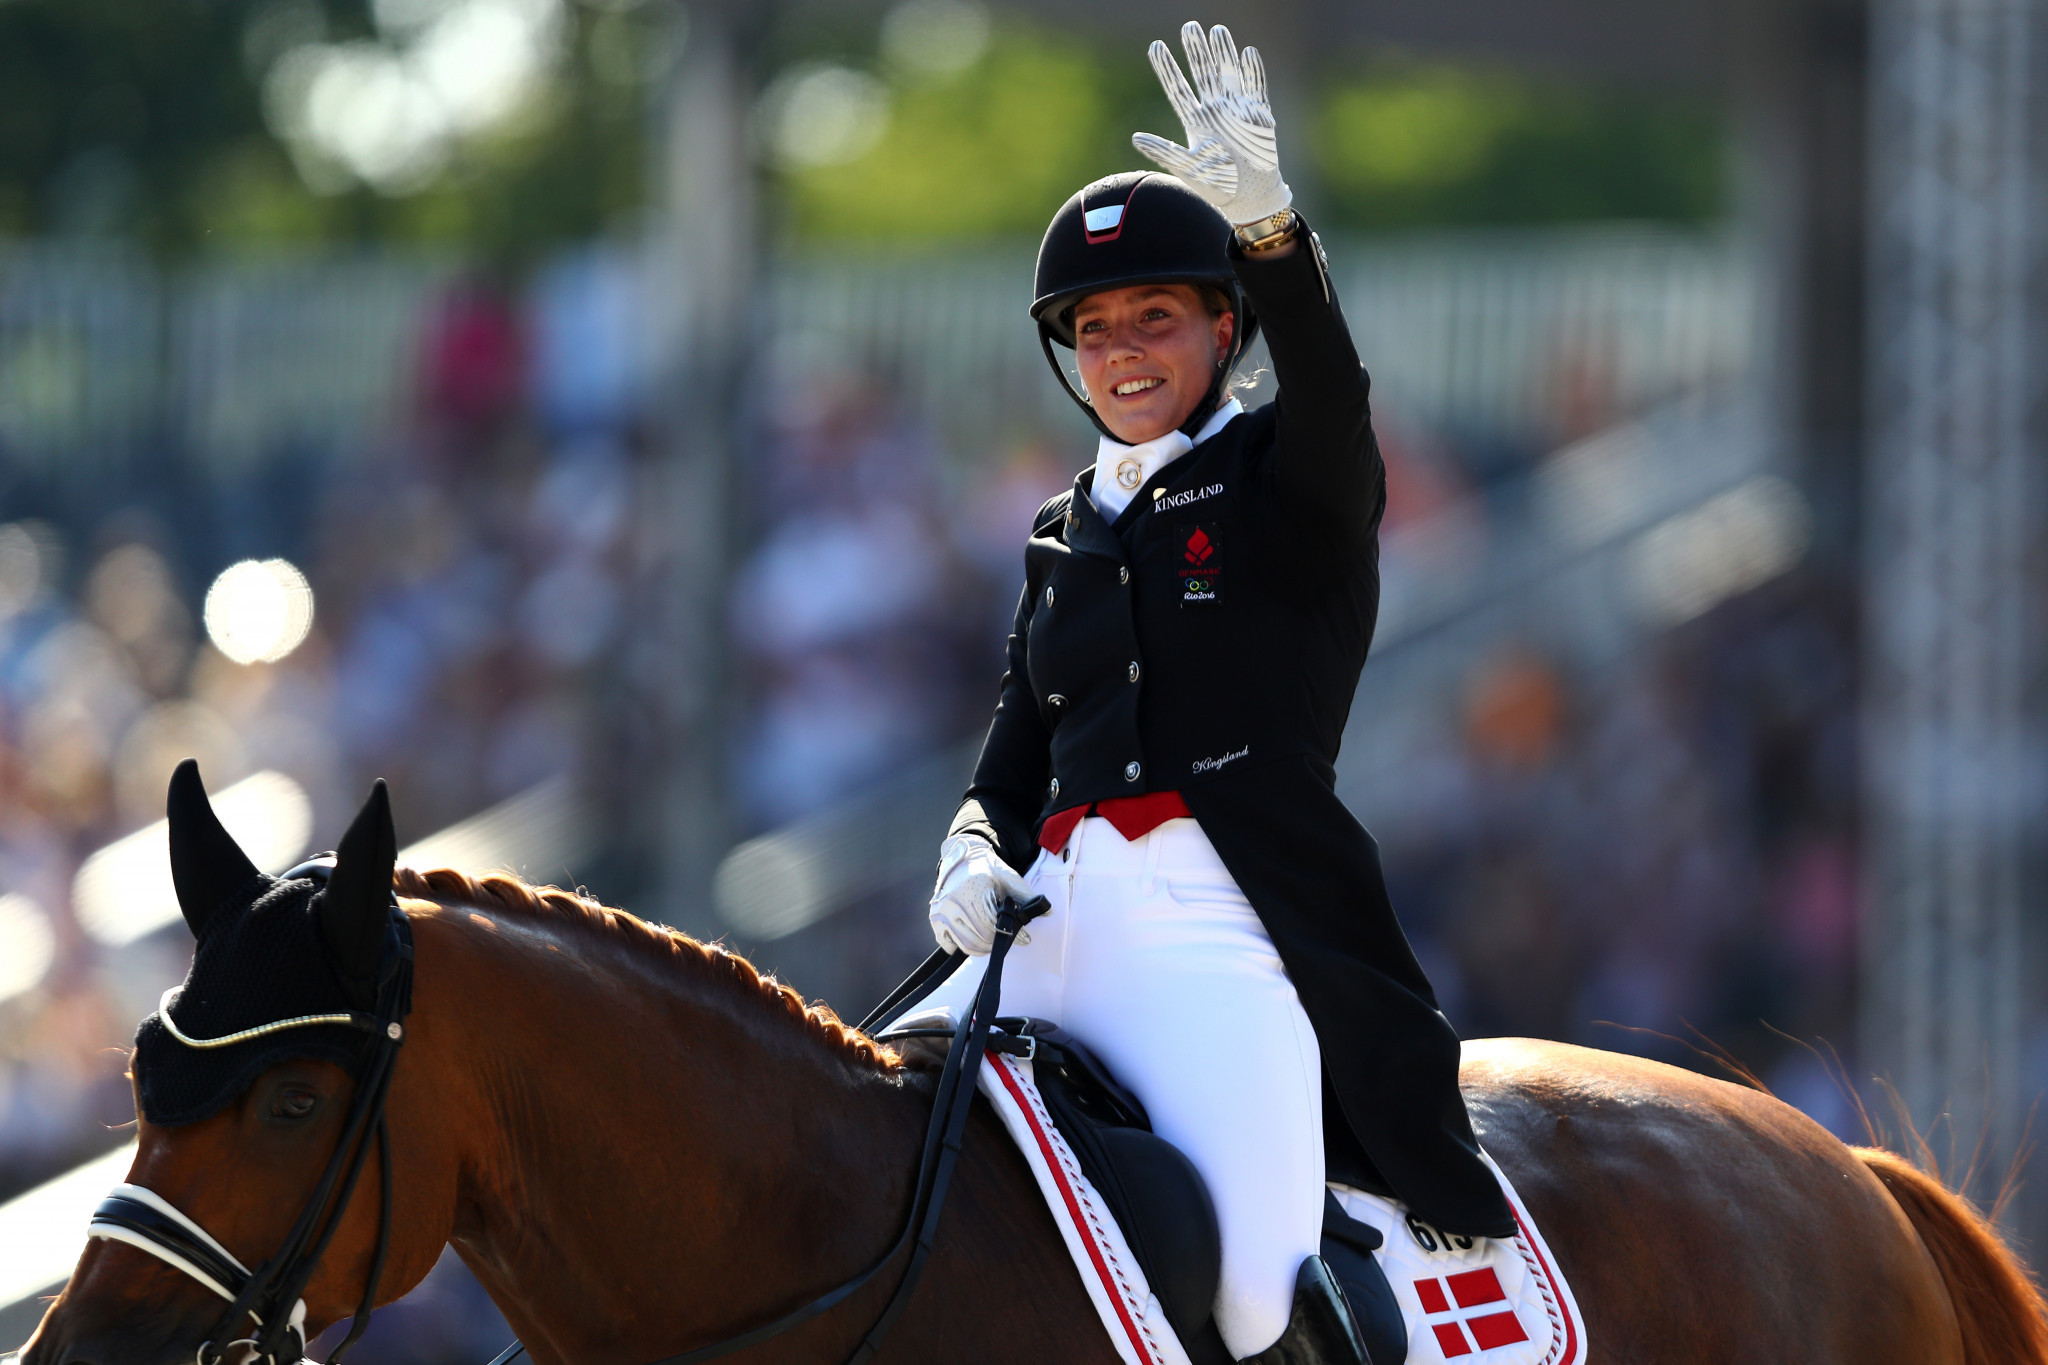 Medals up for grabs across three disciplines as FEI World Cup circuit moves to Lyon